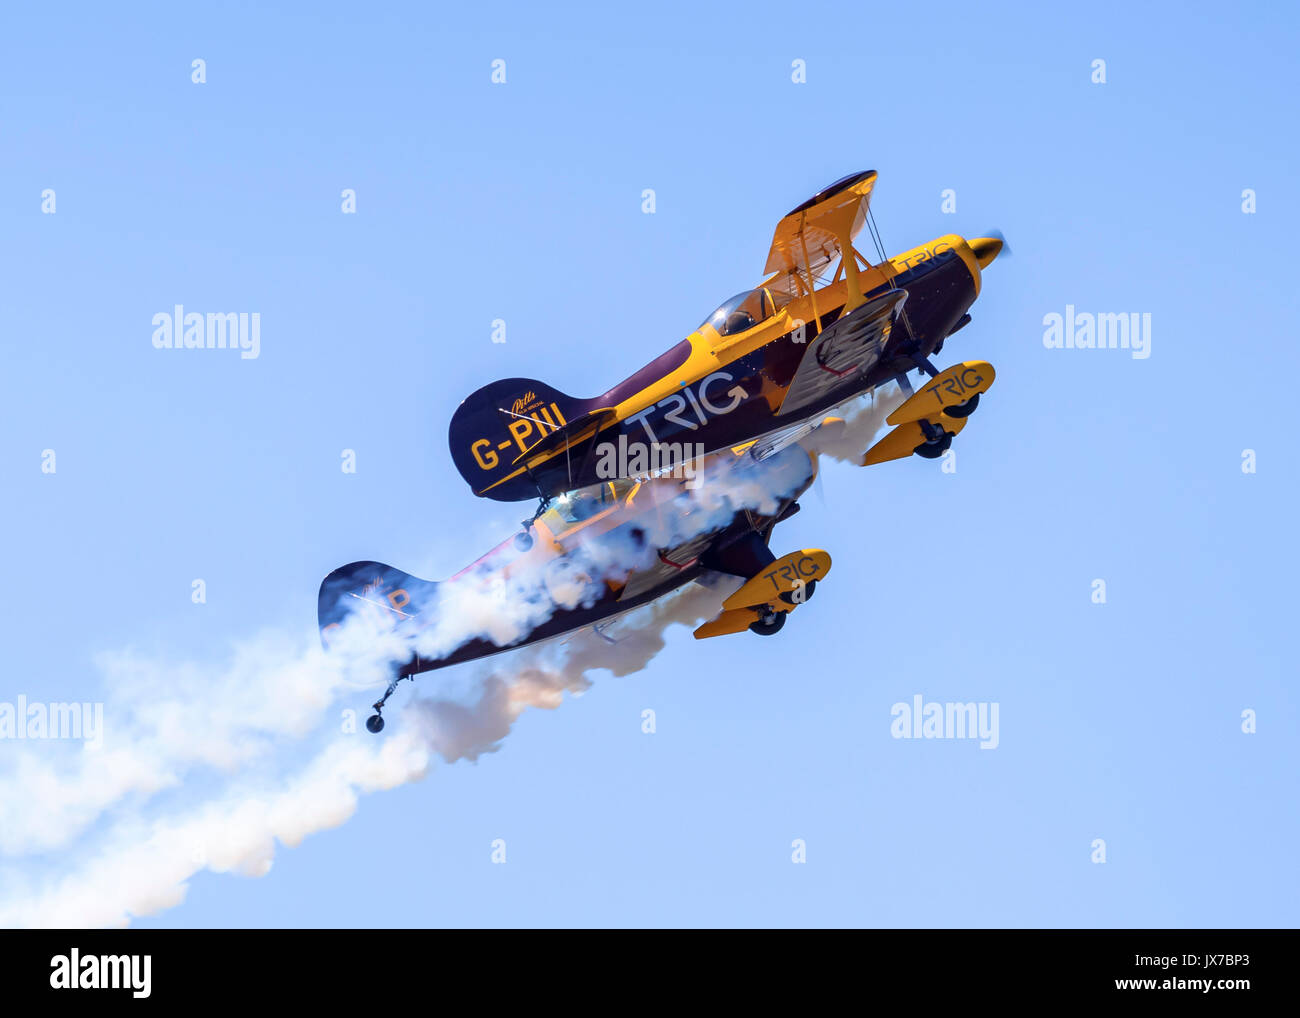 Trig Aerobatic Team performing close-formation aerobatic stunts in their Pitts Special S-1D biplanes - Stock Image